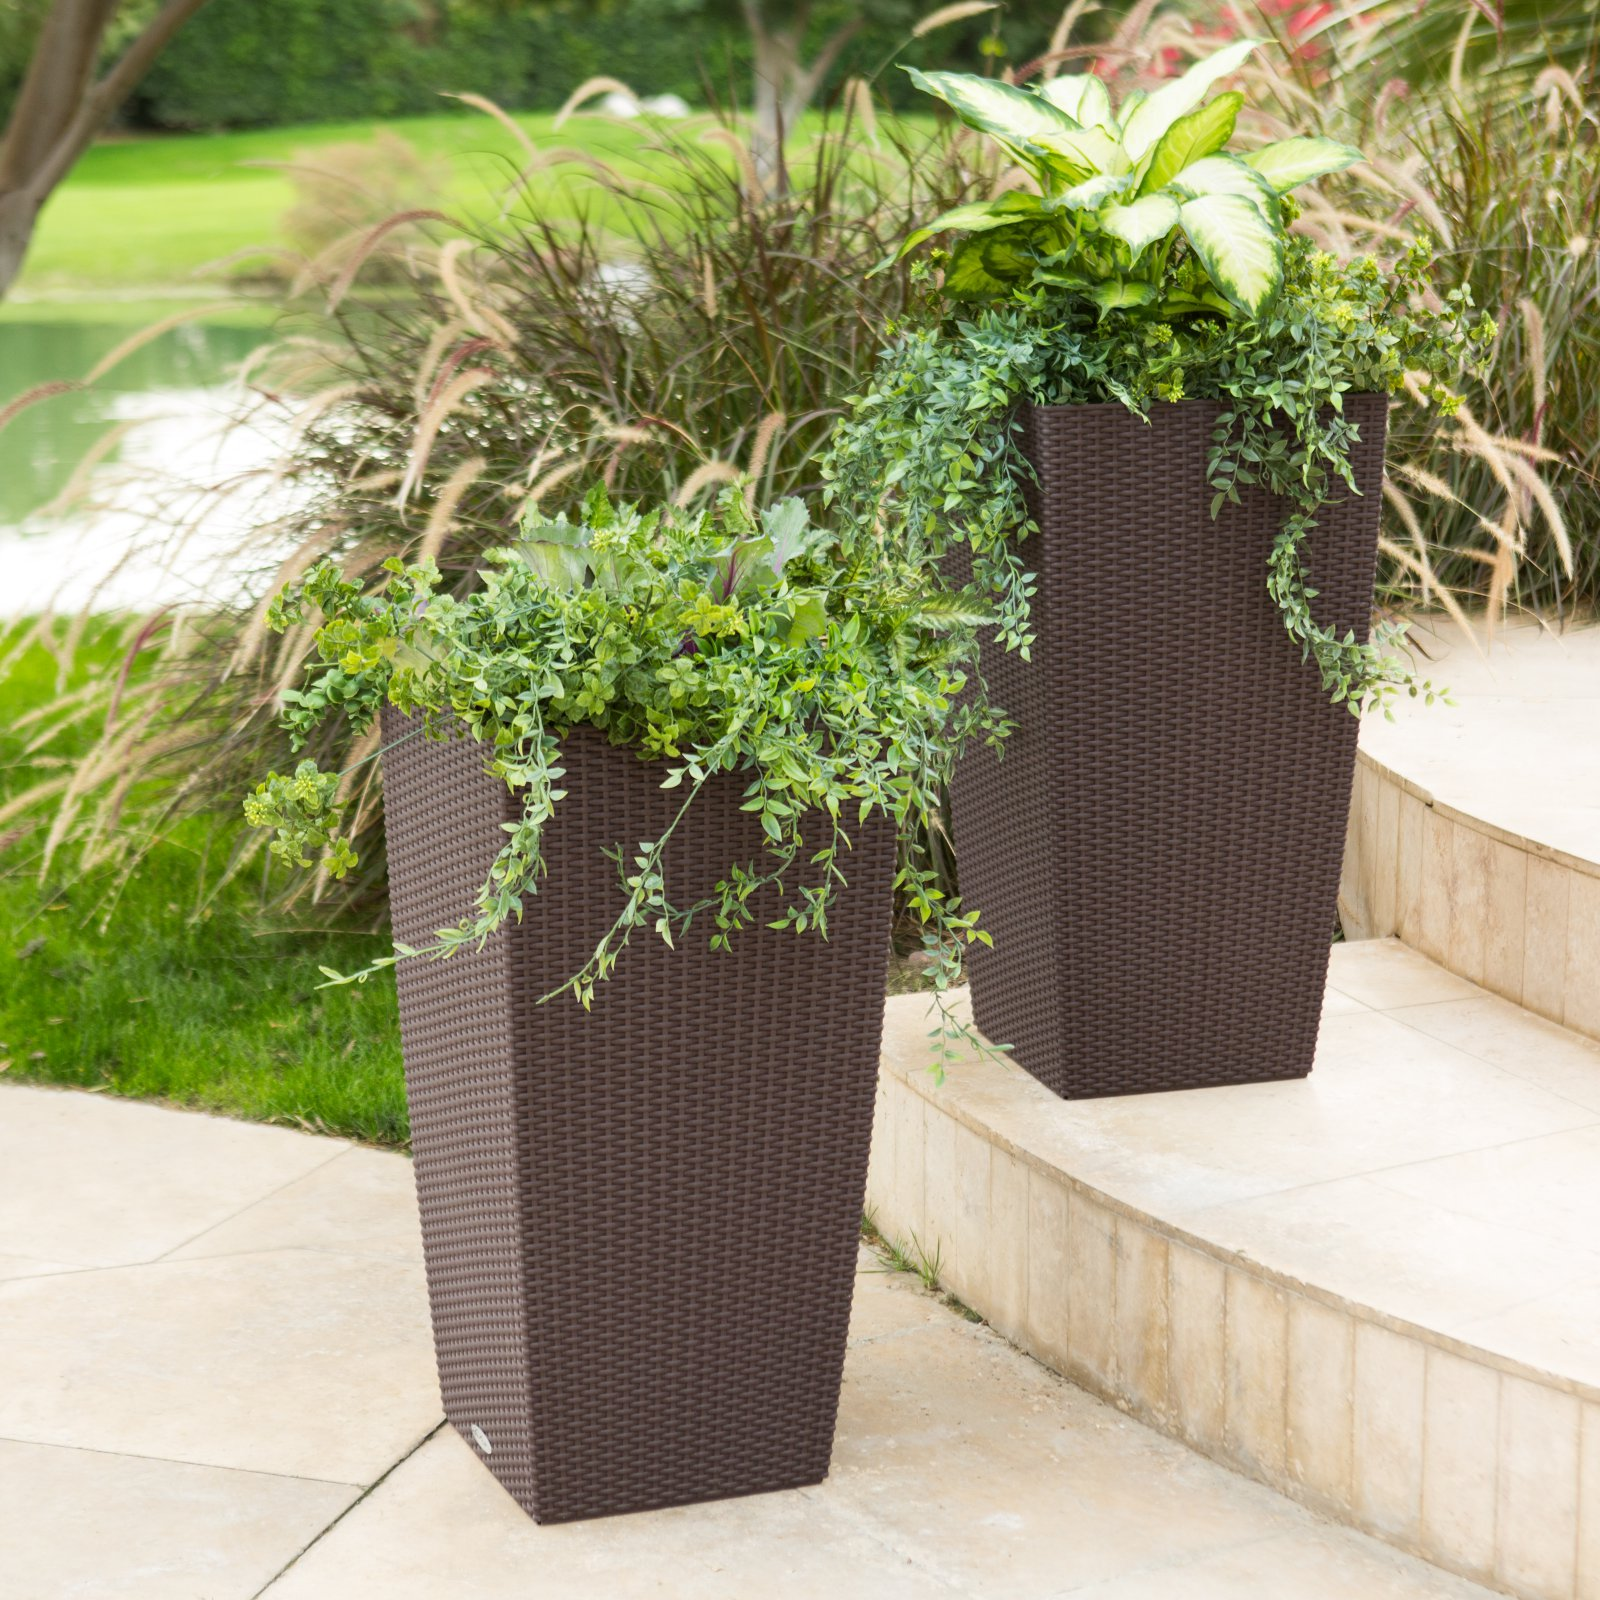 Square Lechuza Cubico Cottage Self-Watering Resin Planter